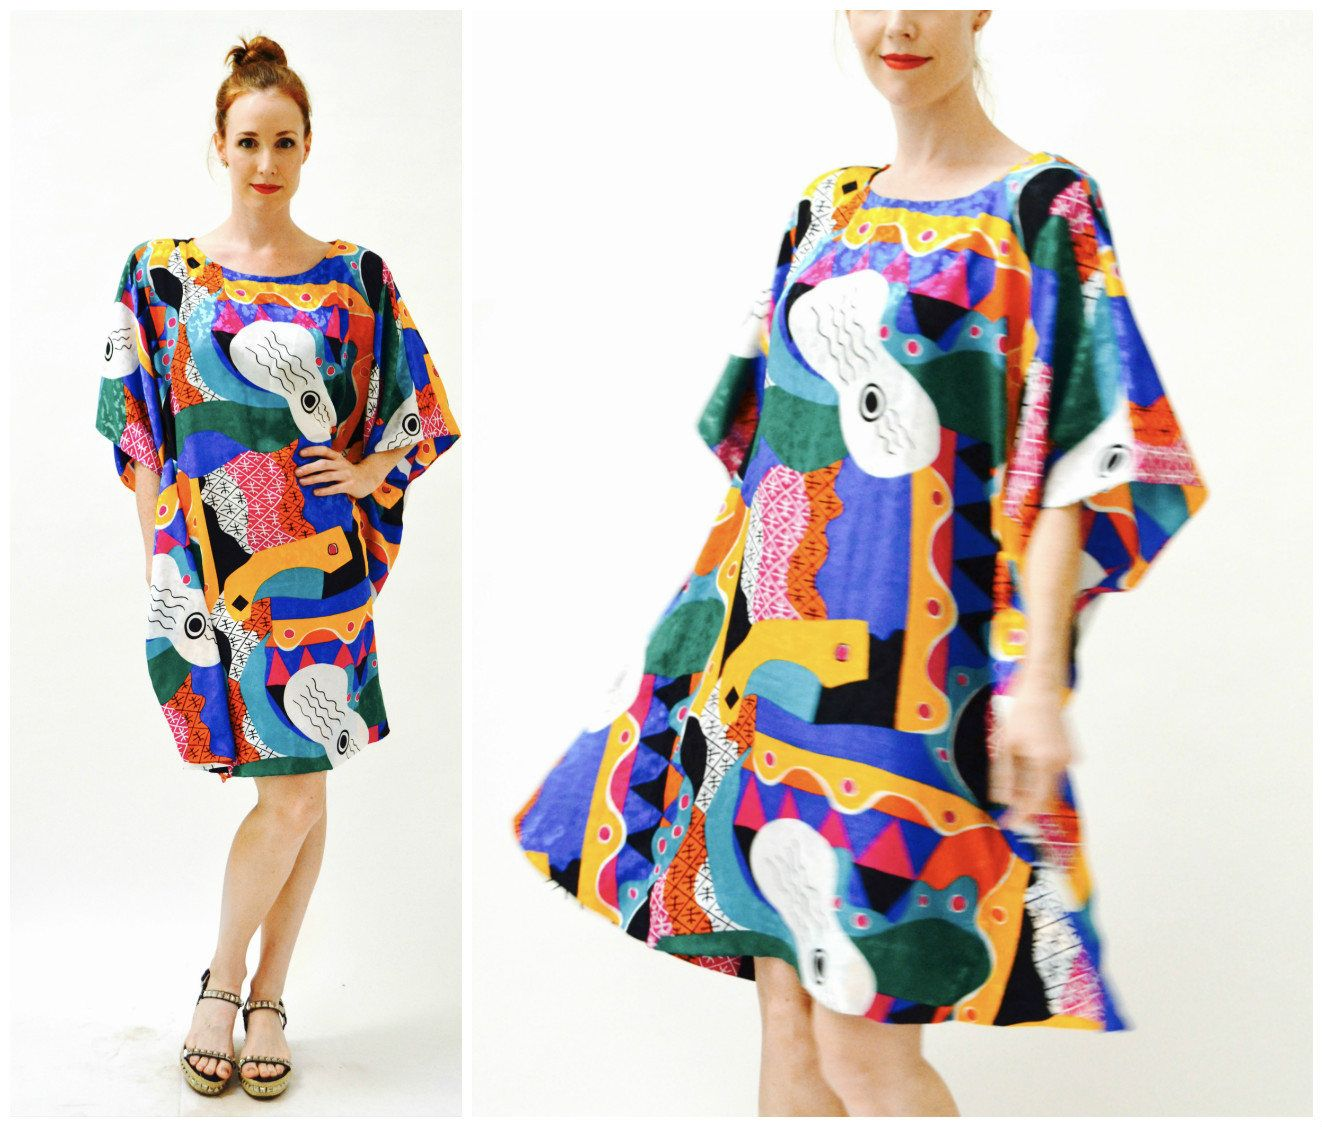 6dd0aa69b046 80s Vintage Abstract Print Dress Caftan Kaftan Beach Cover Up with Guitar  Music Bold Print Large Pink Blue Yellow Orange by Hookedonhoney on Etsy